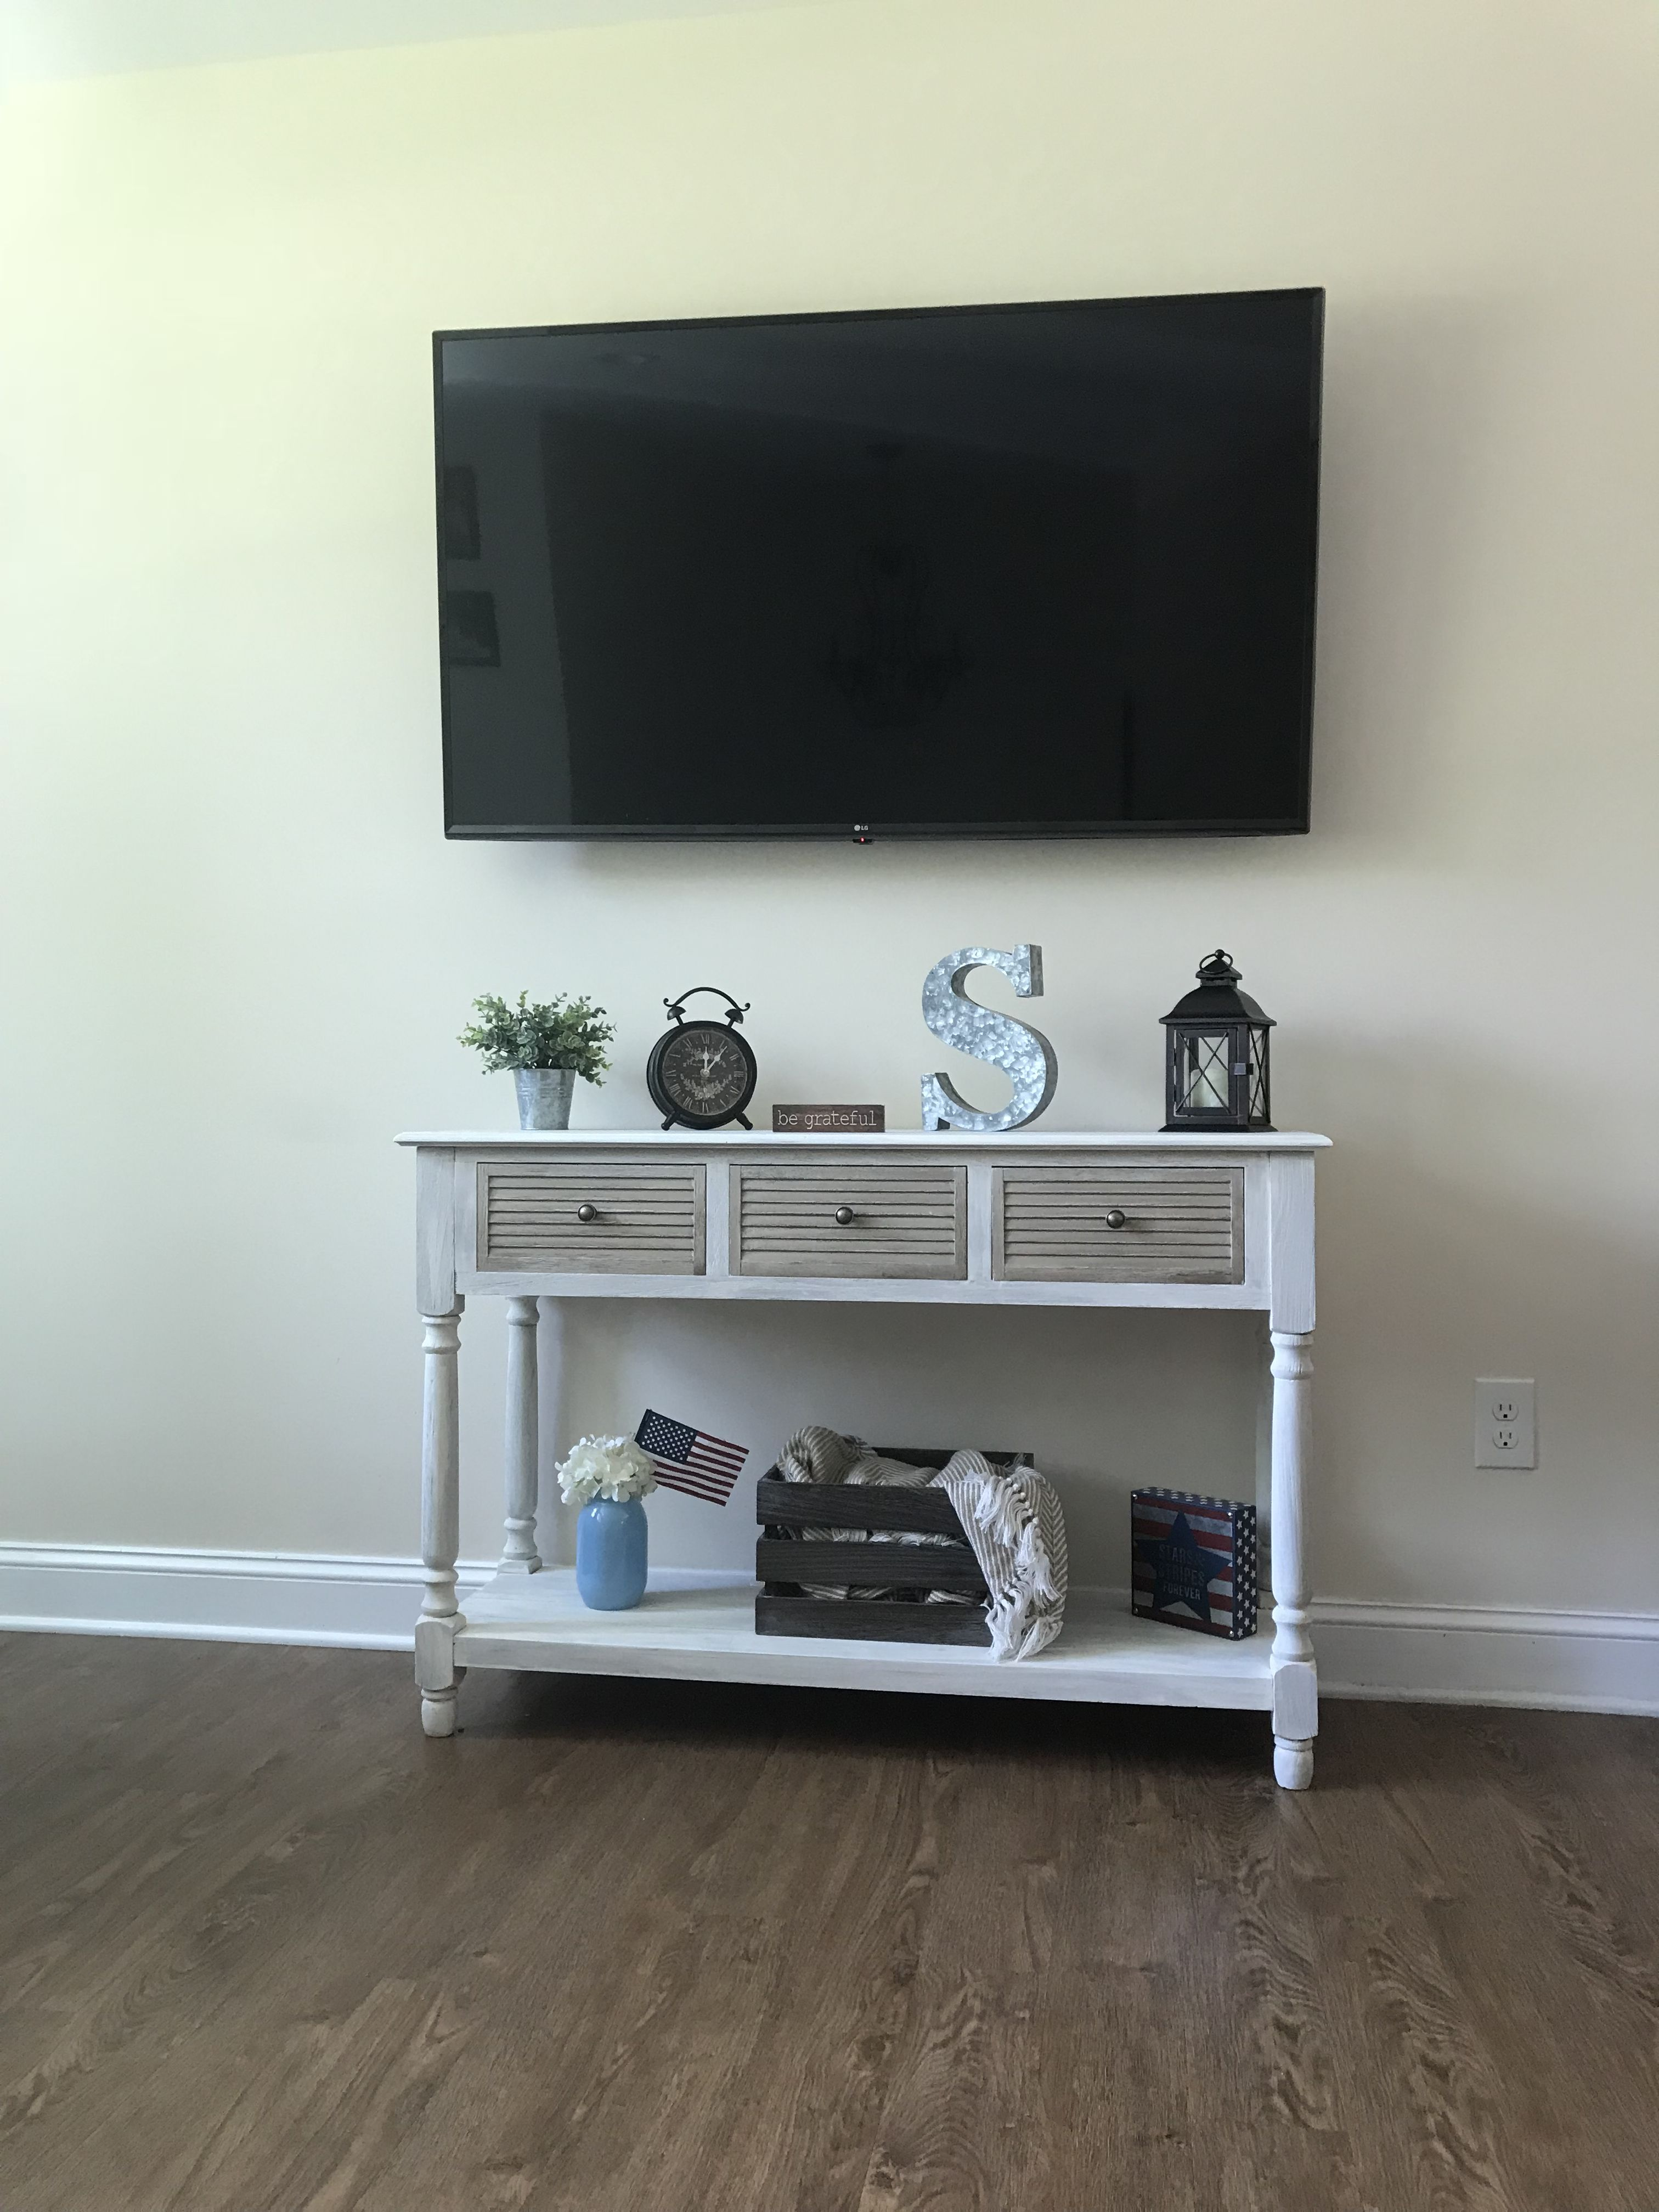 Console Table Wall Mounted Tv Farmhouse Decor In